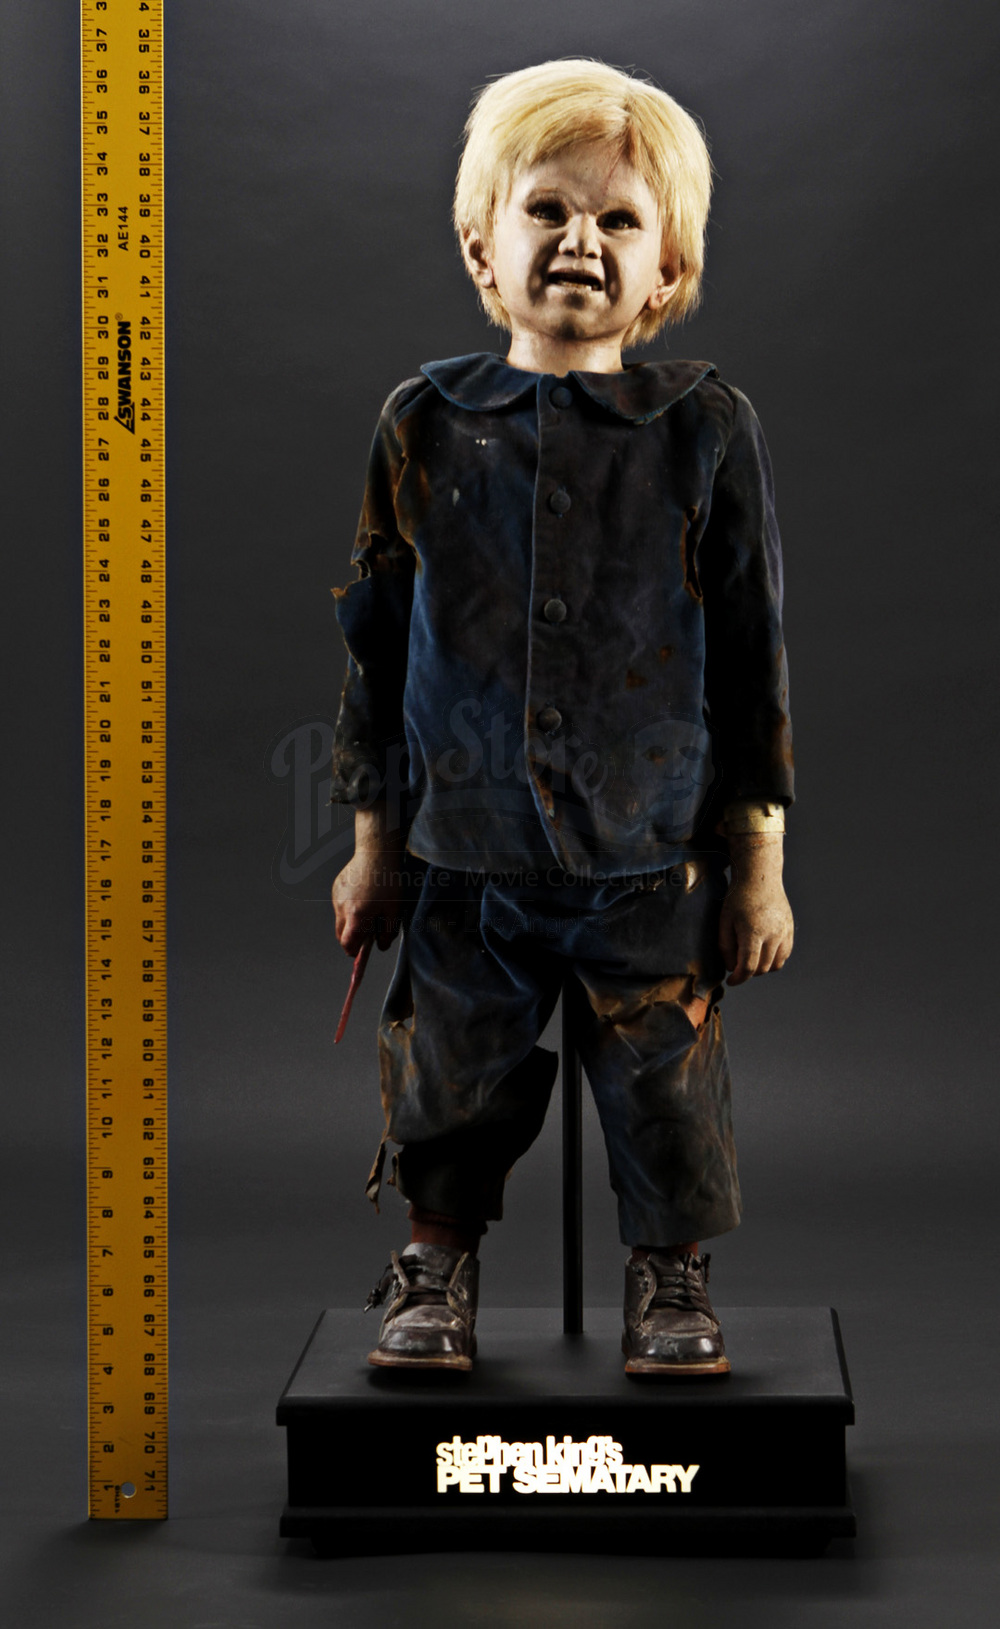 Gage creed doll